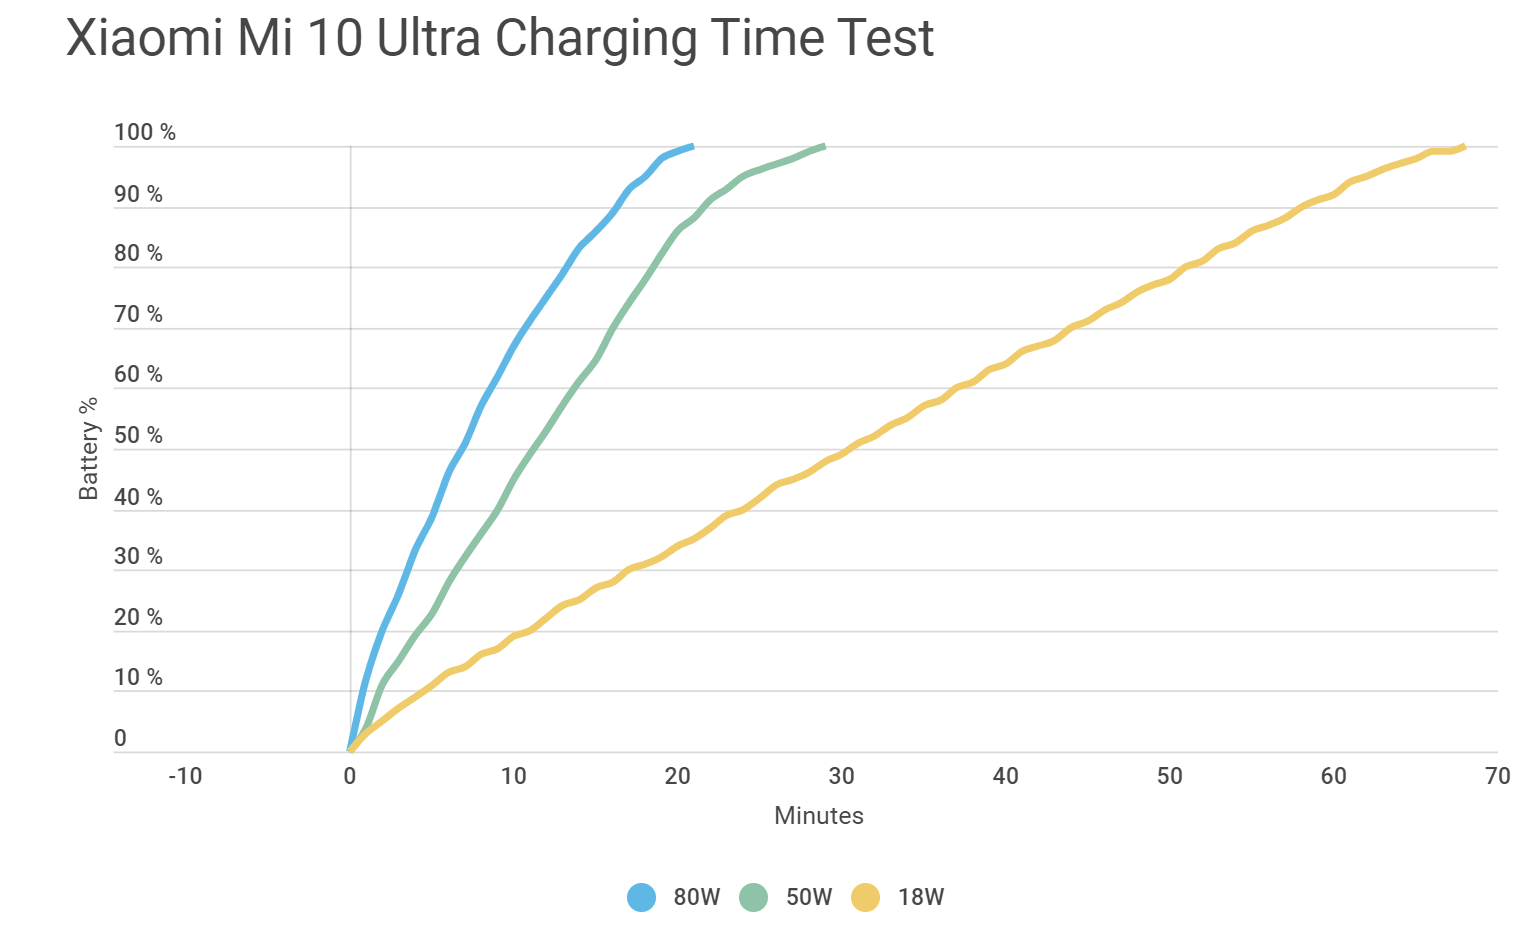 120 watt Xiaomi charger only gives 80 watts of charge in practice